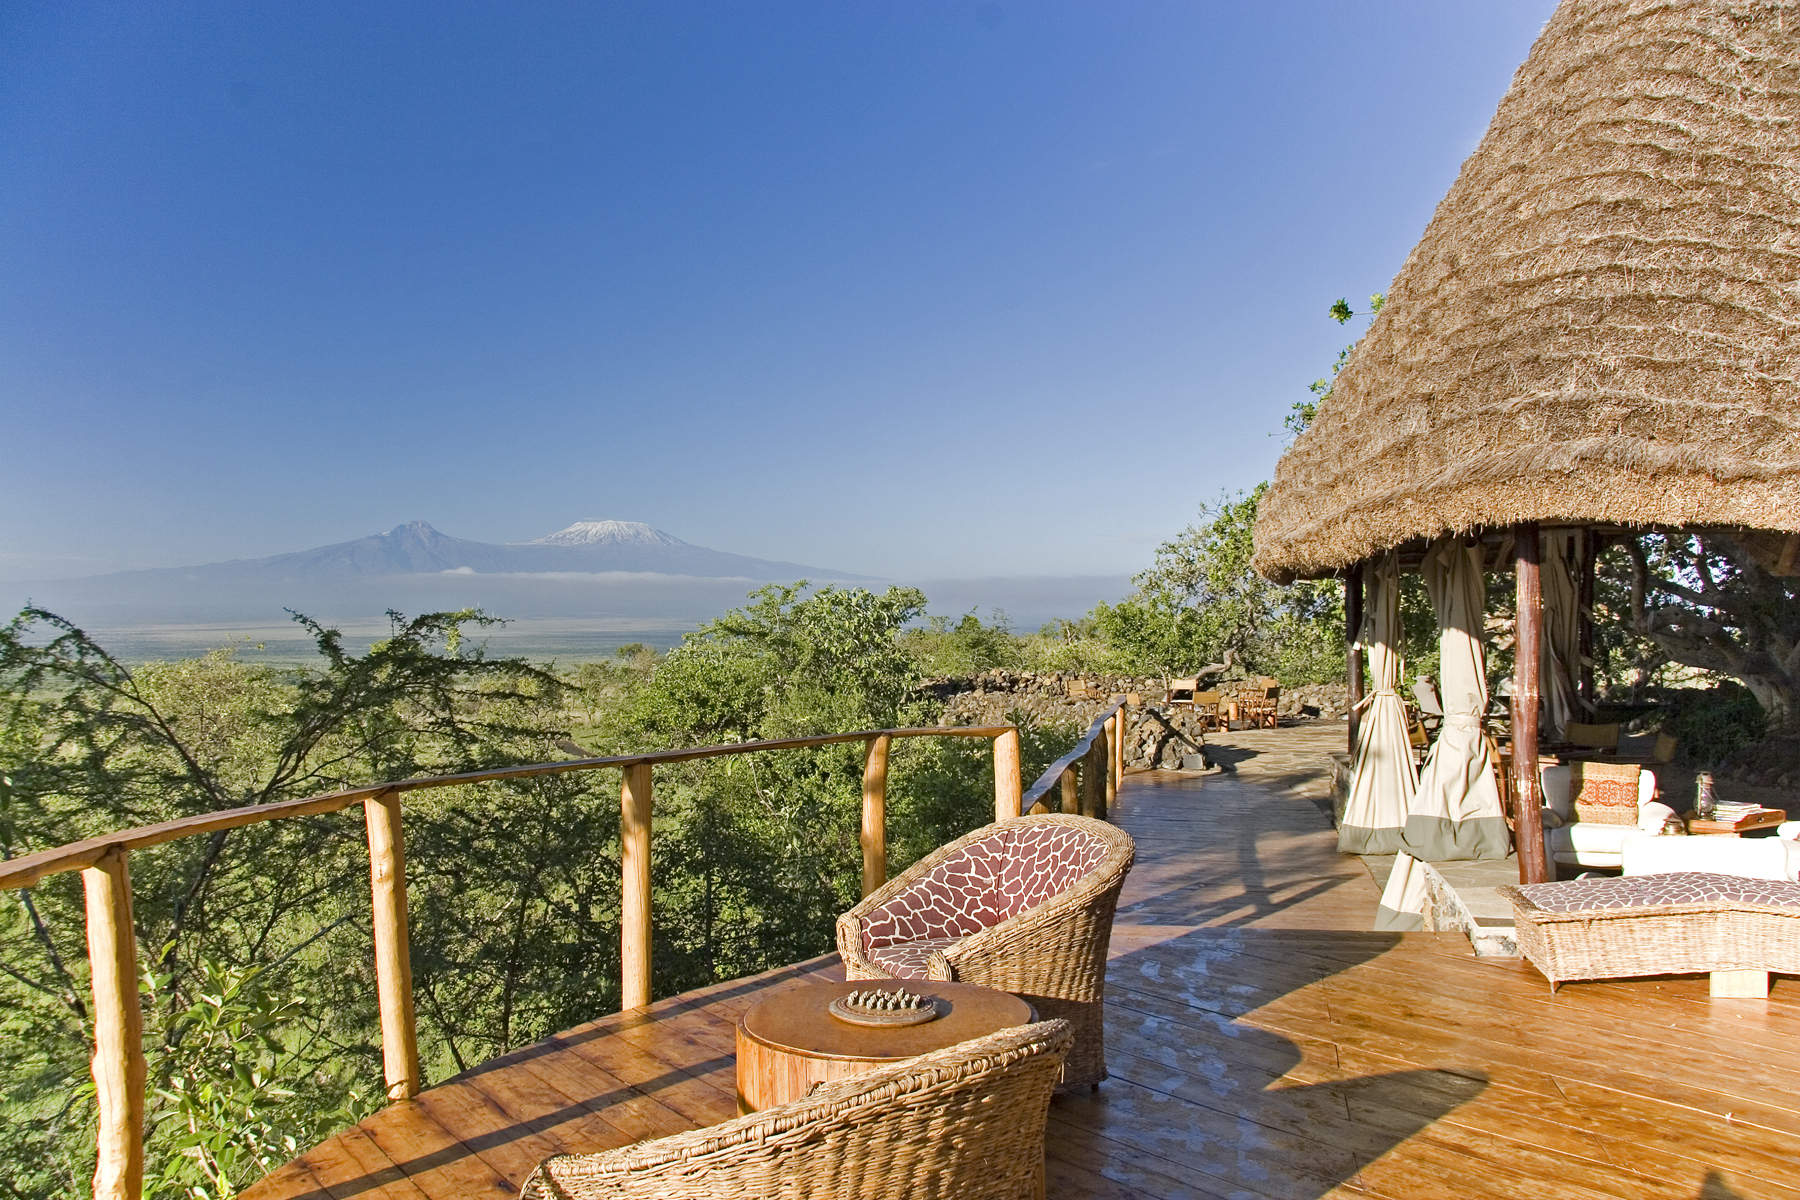 CYK_A_View_of_Kili_from_Tembo_House_Ian_Johnson.jpg